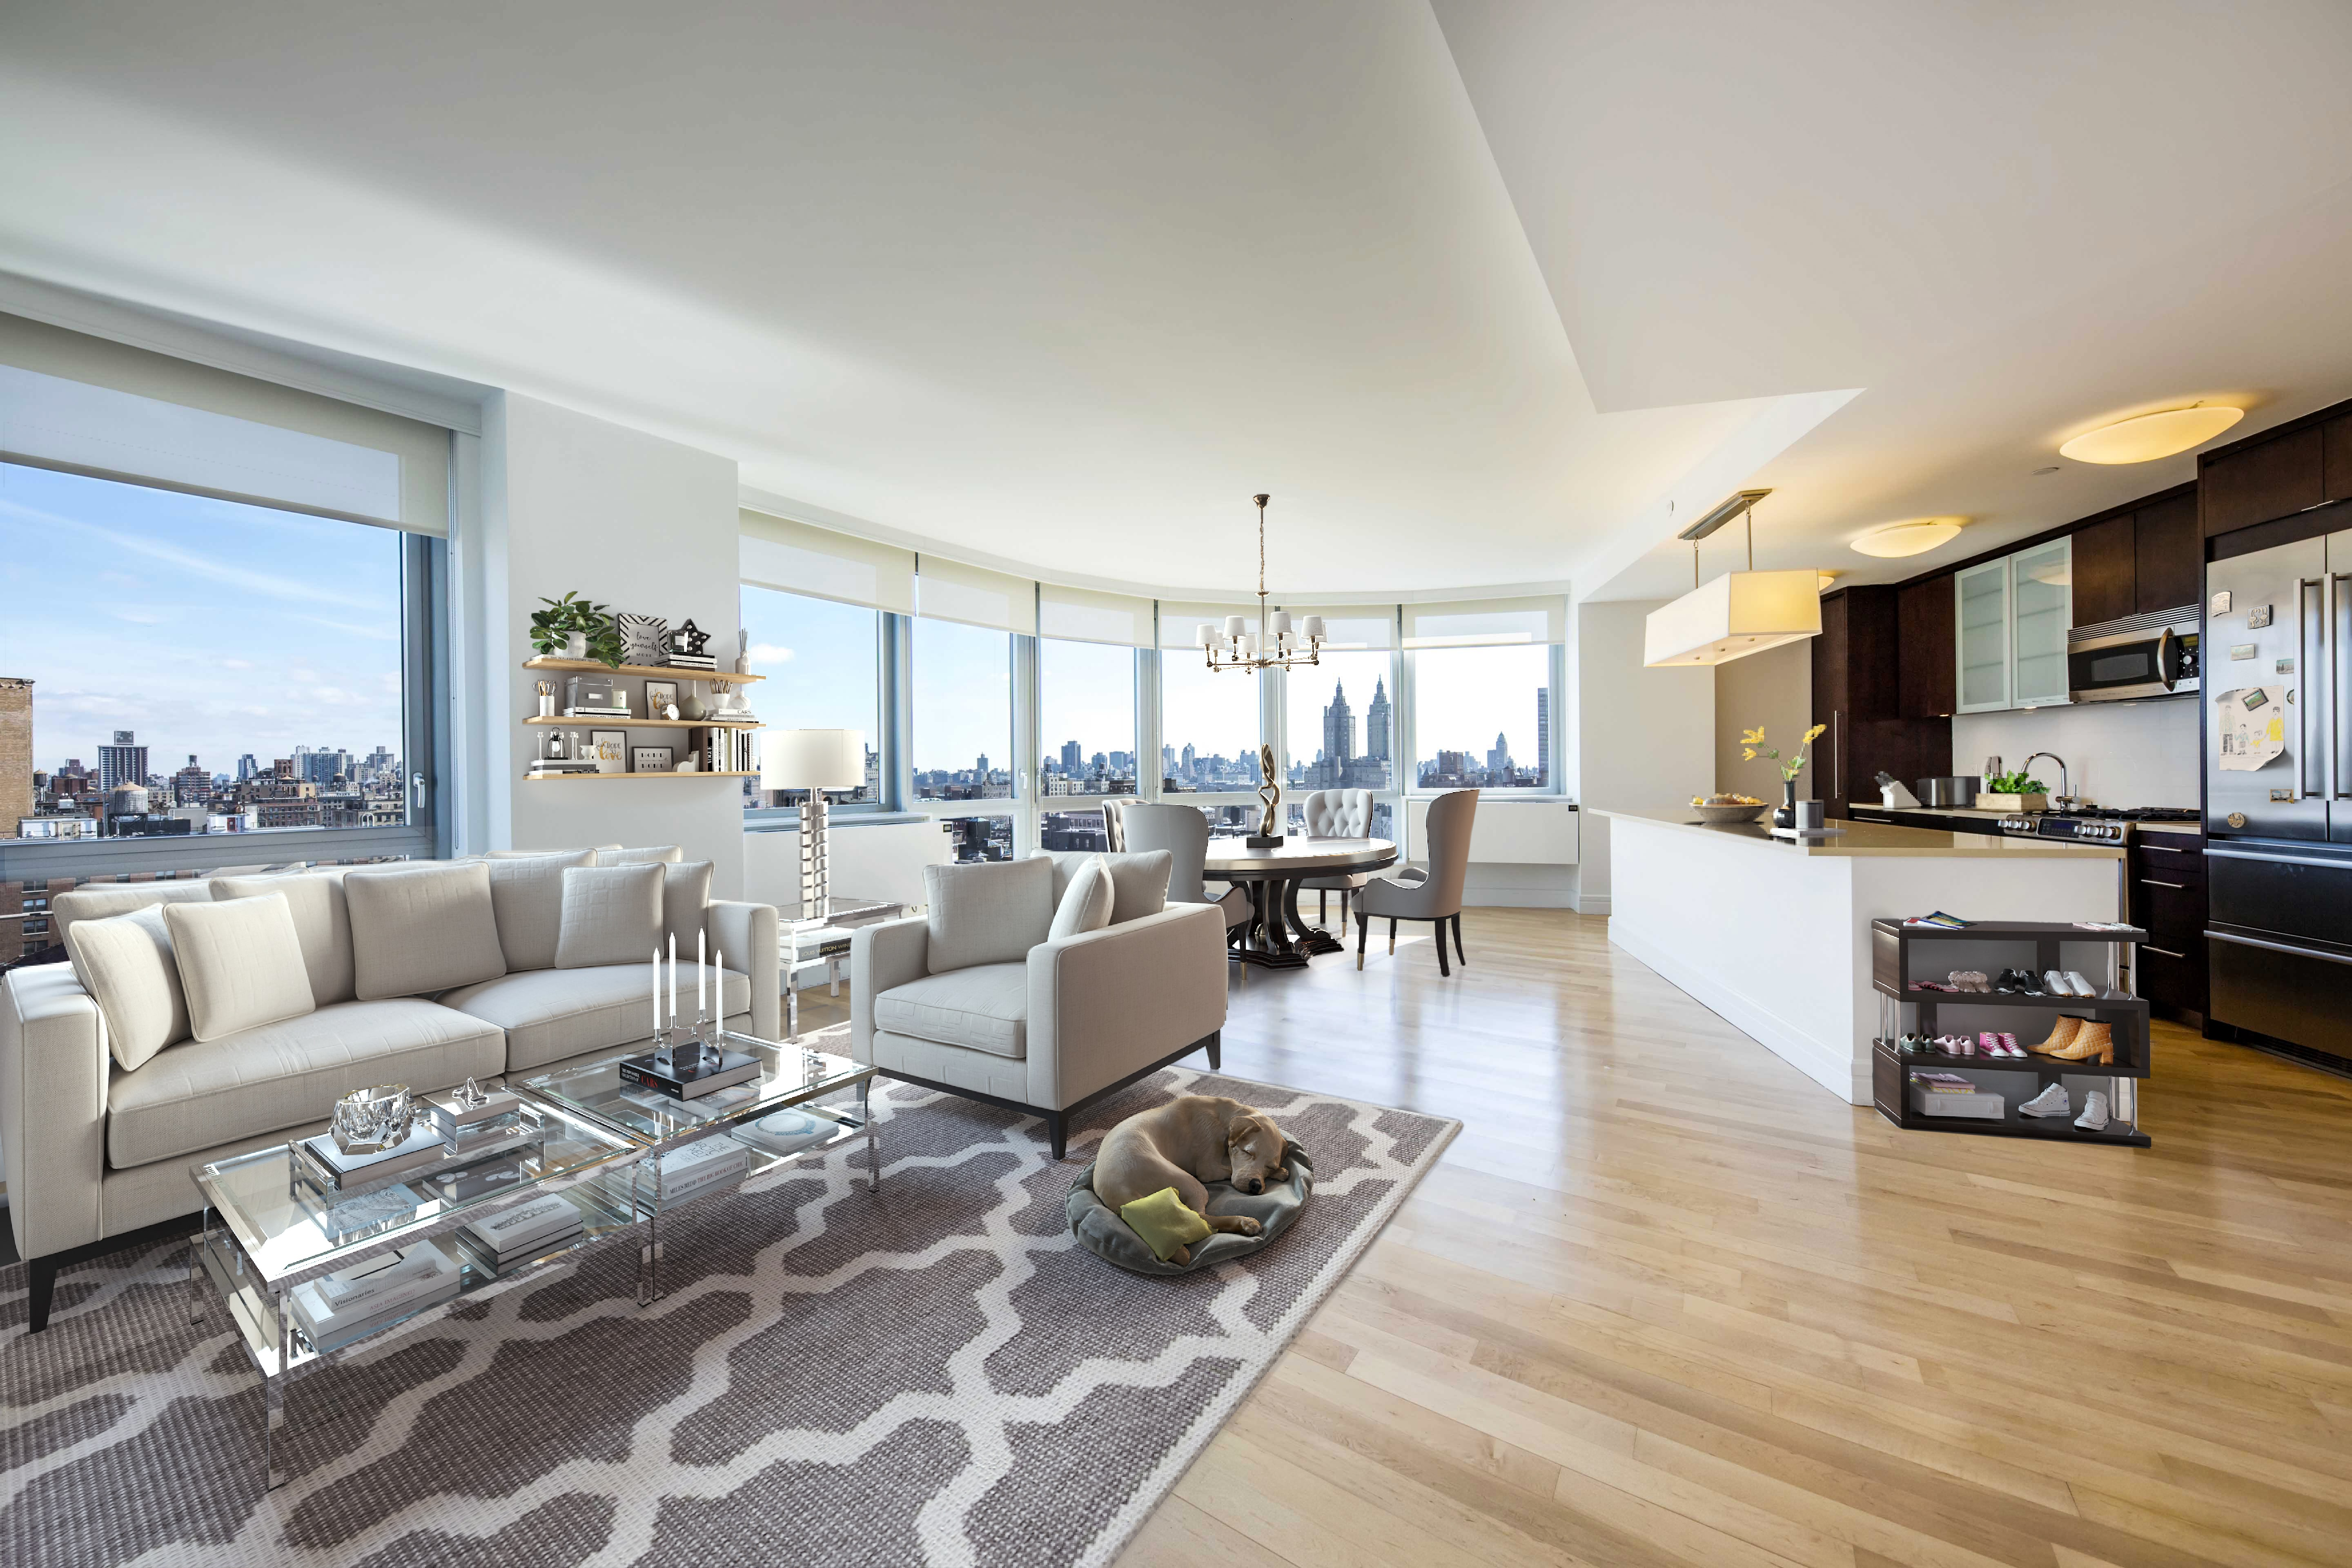 Multifamily Living Room - After-1